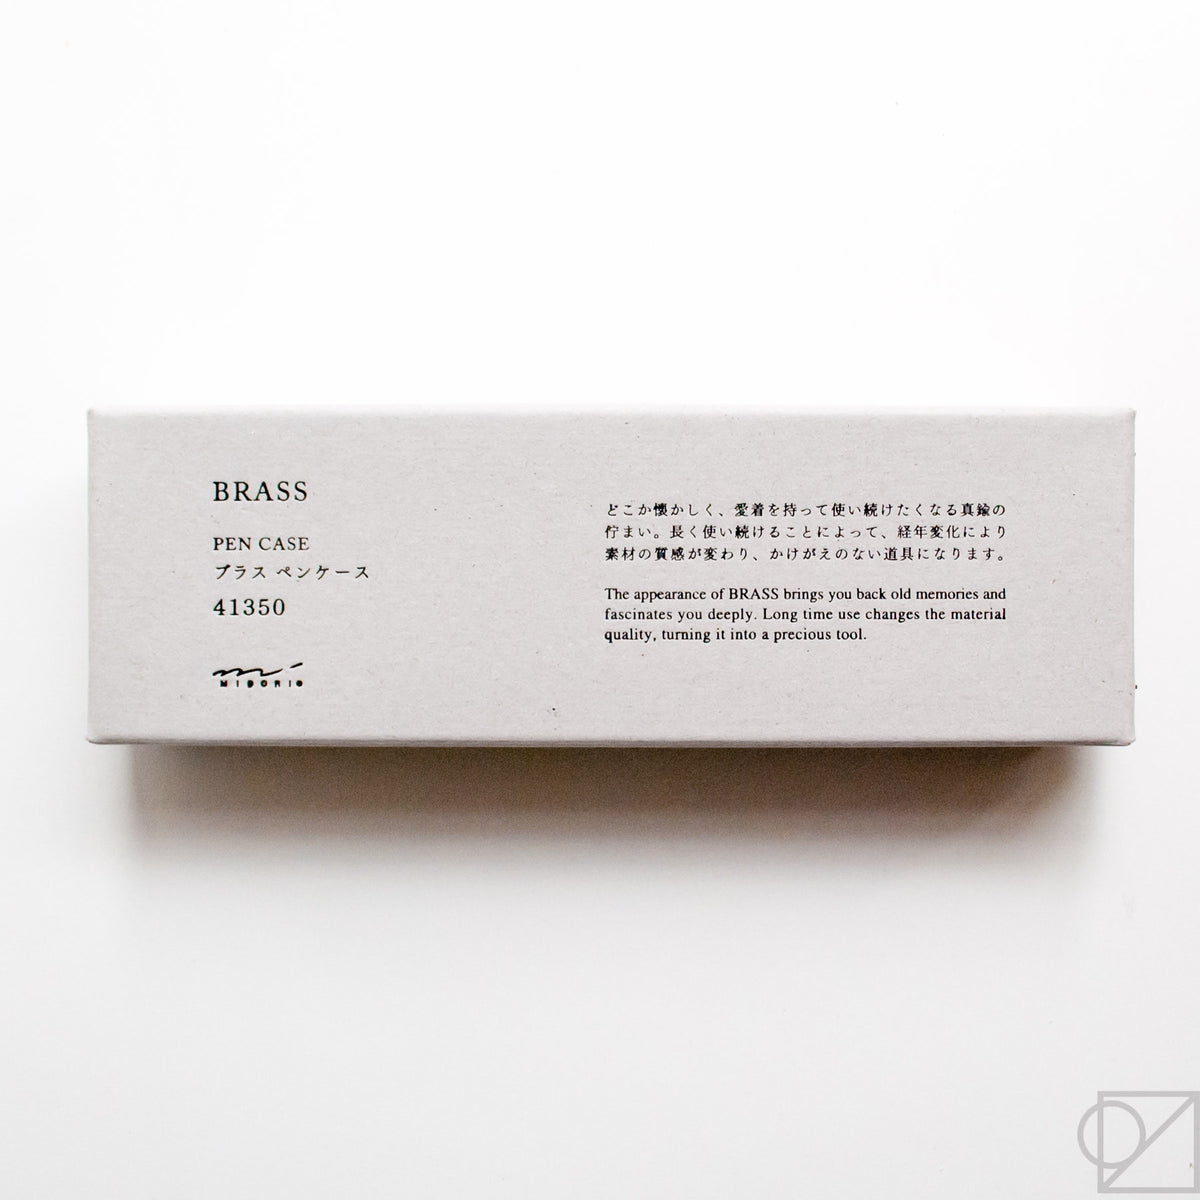 Midori Brass Pencil Case packaging